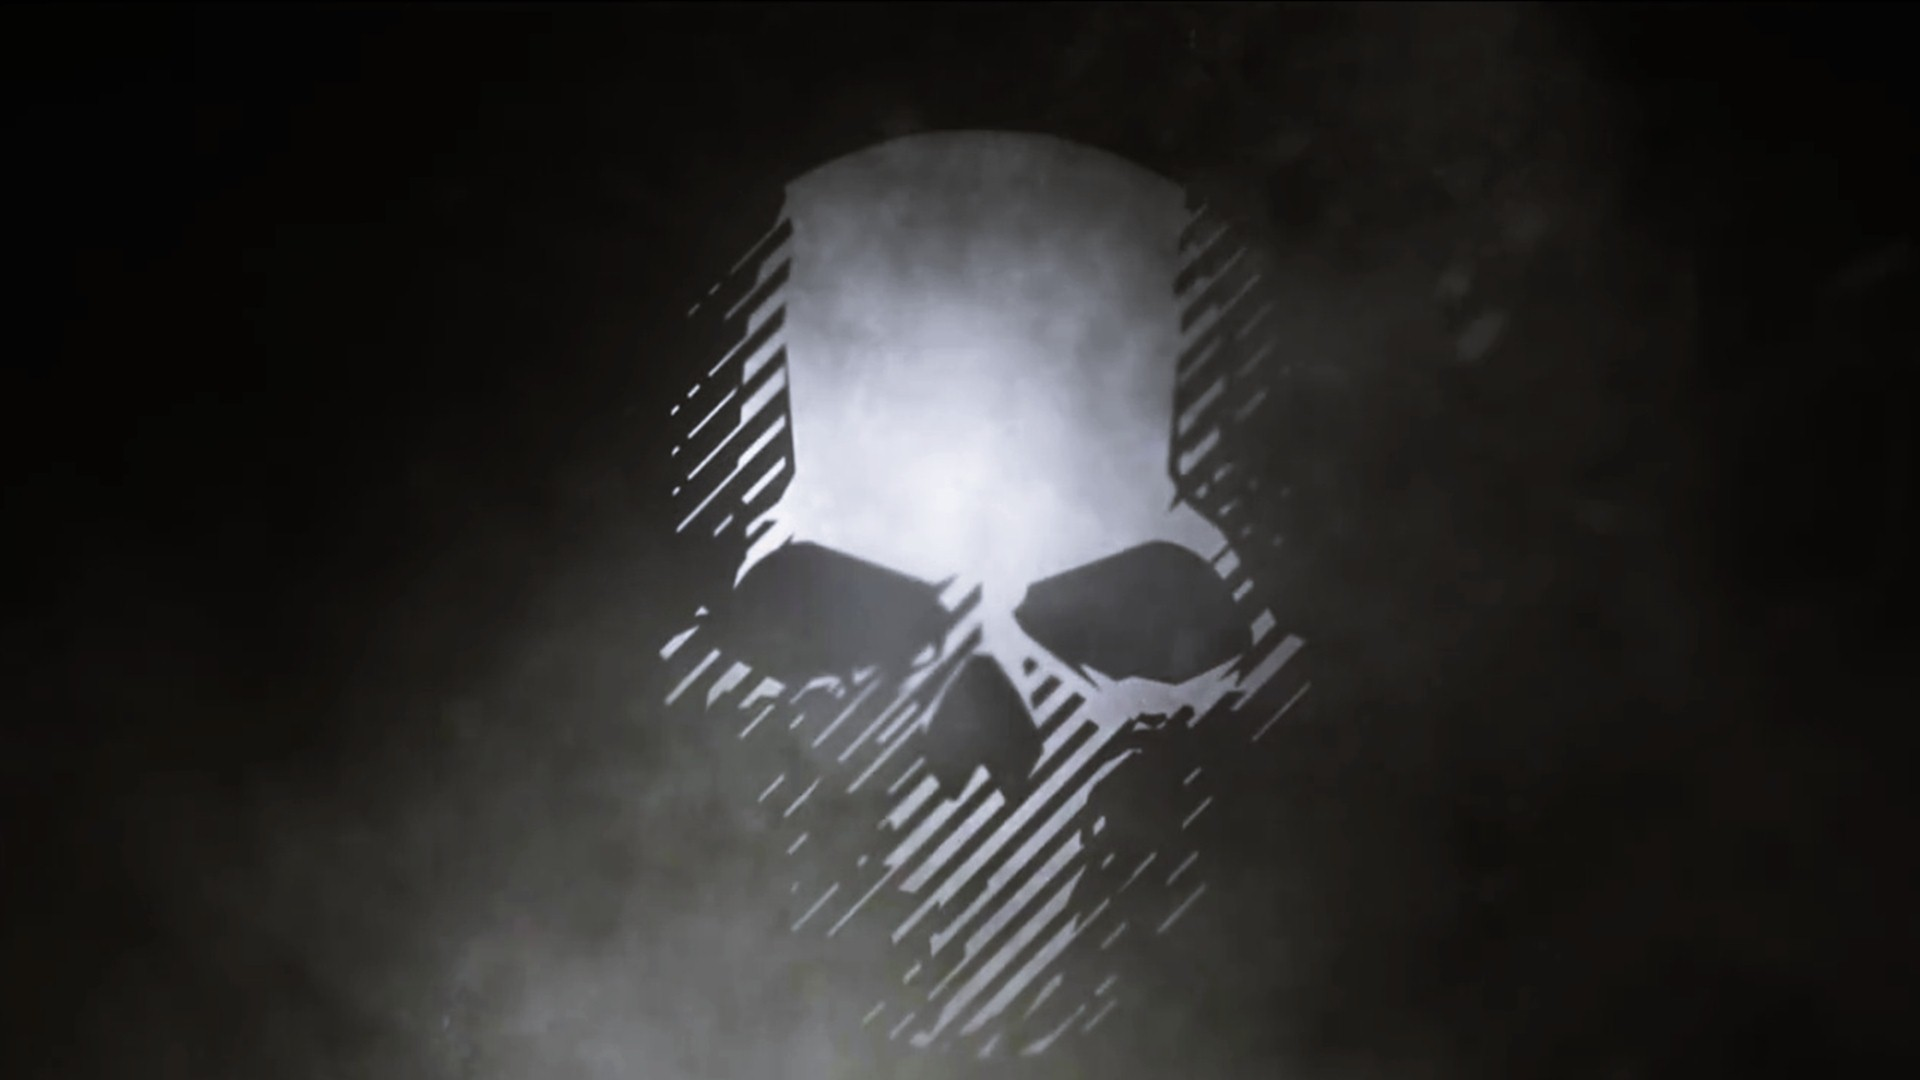 Ghost recon skull wallpapers 70 background pictures - Skull 4k images ...